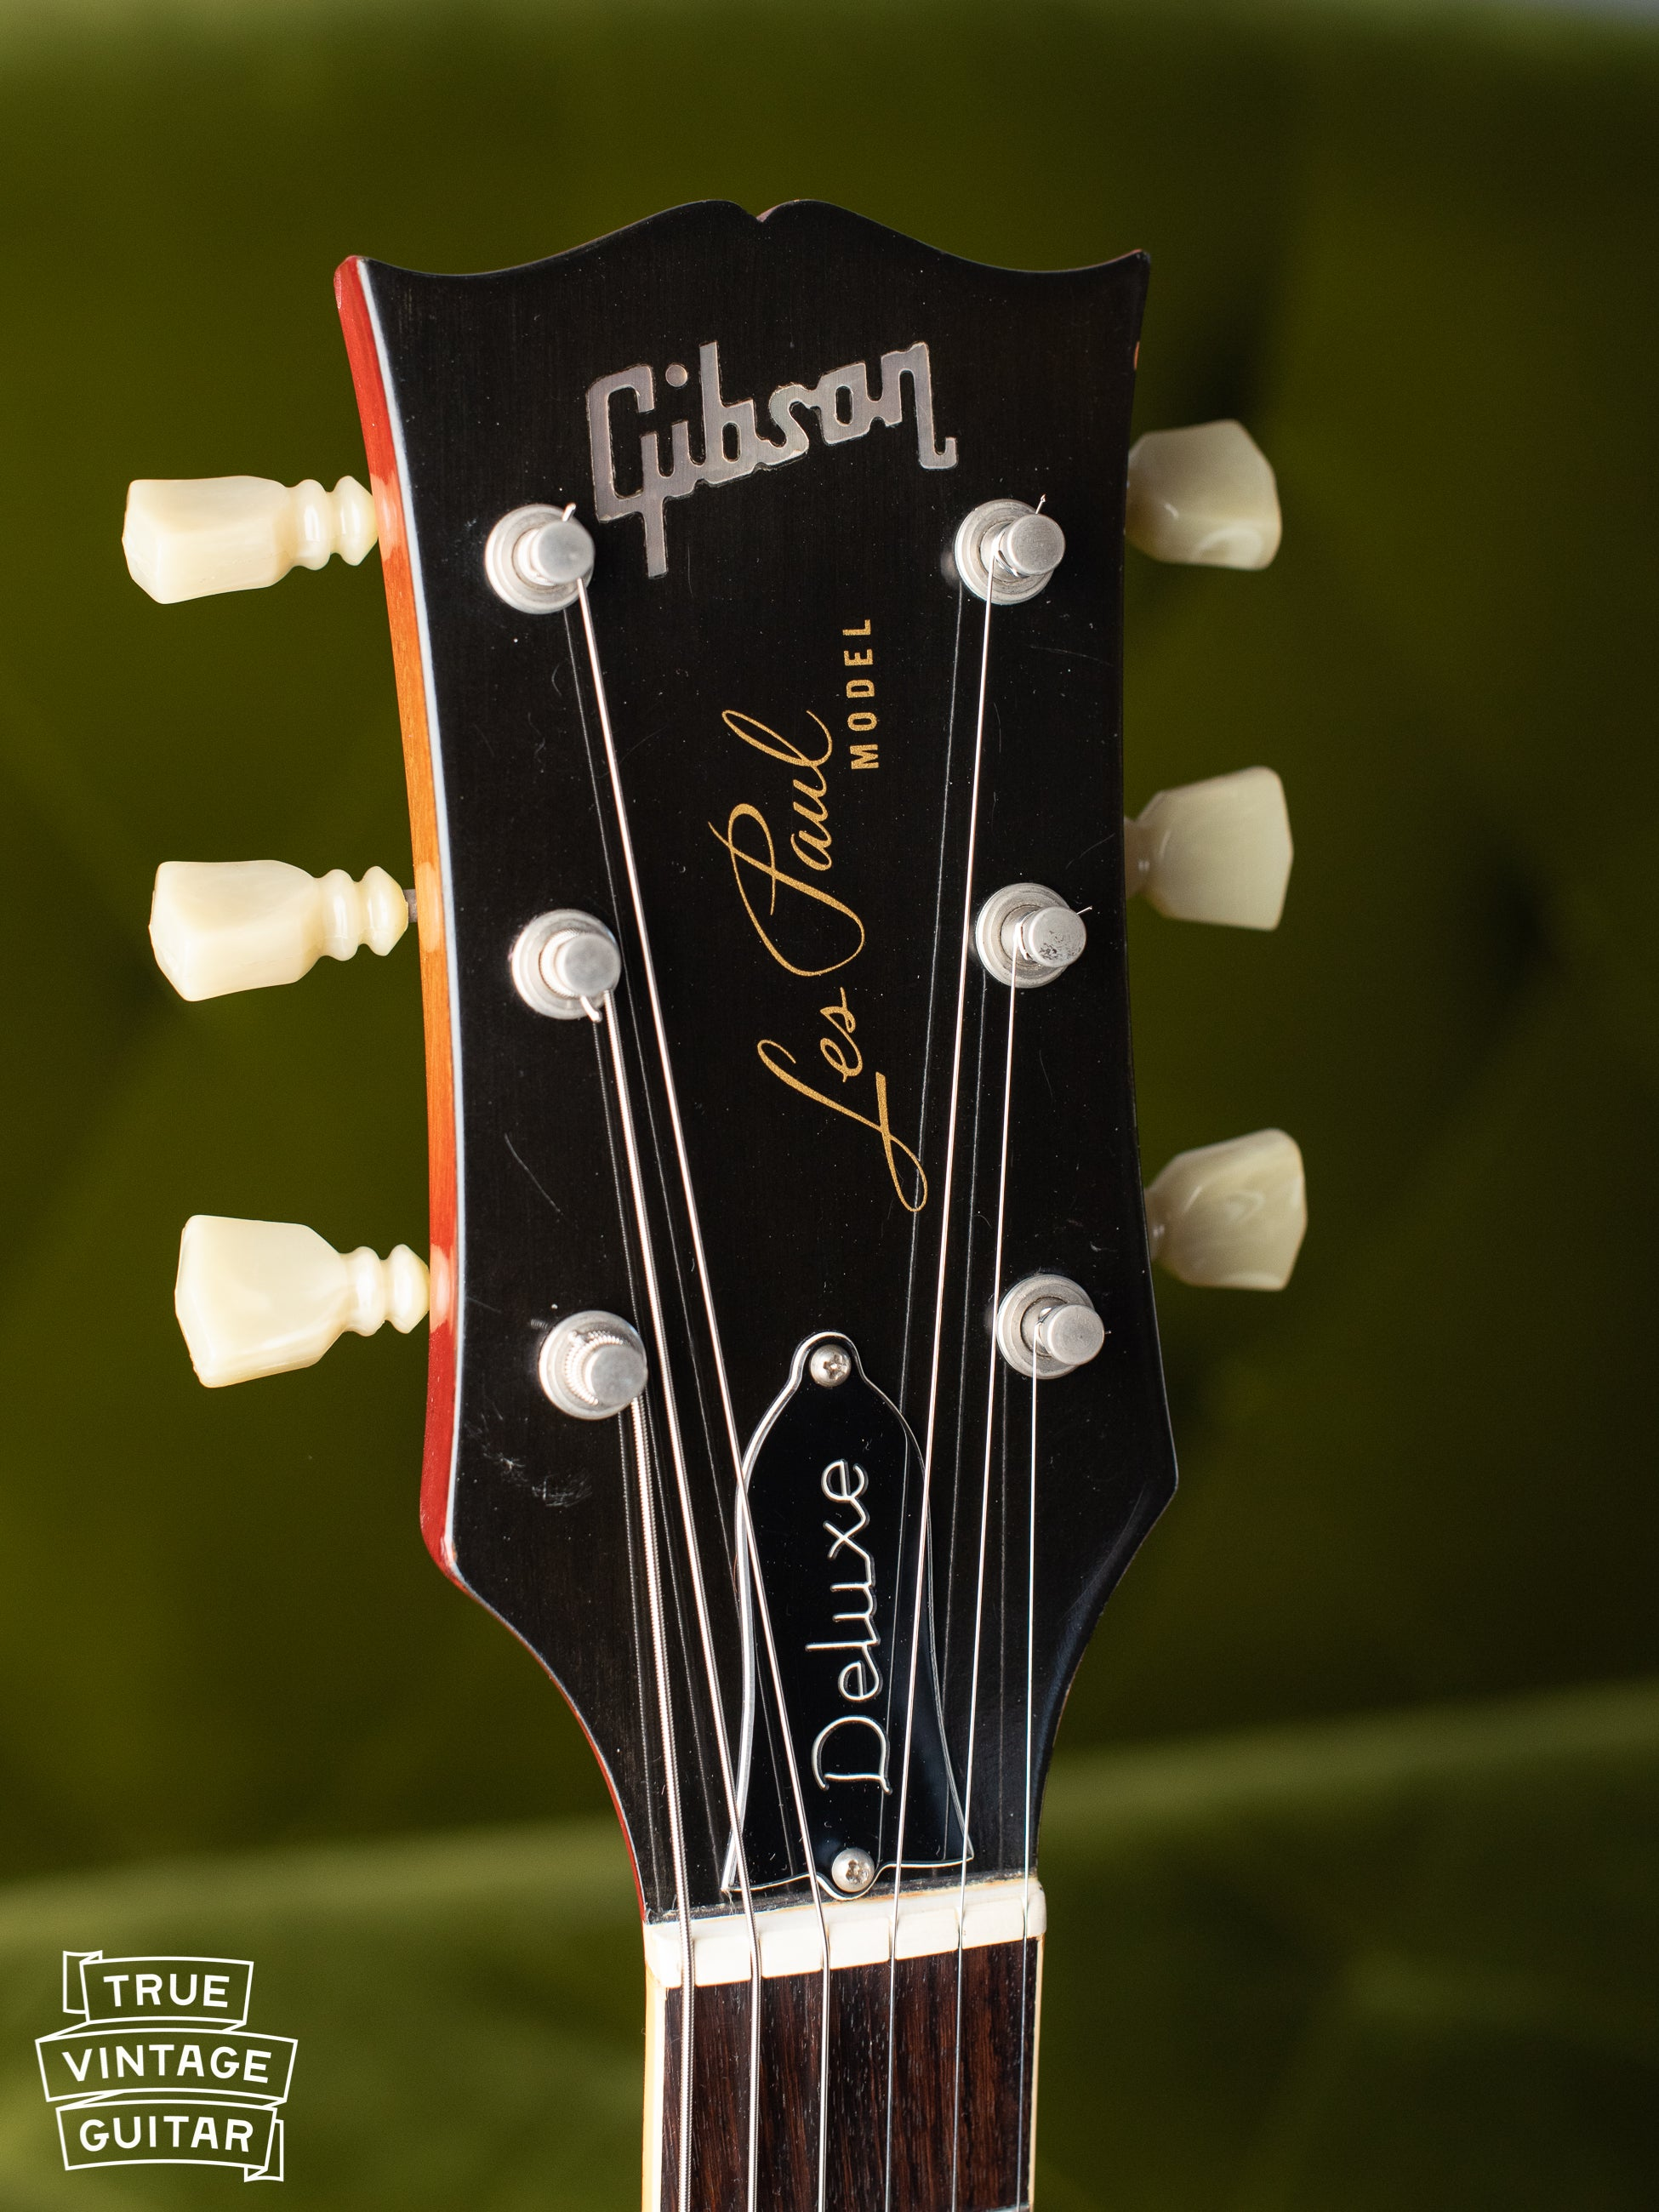 Gibson Les Paul Deluxe headstock vintage 1970